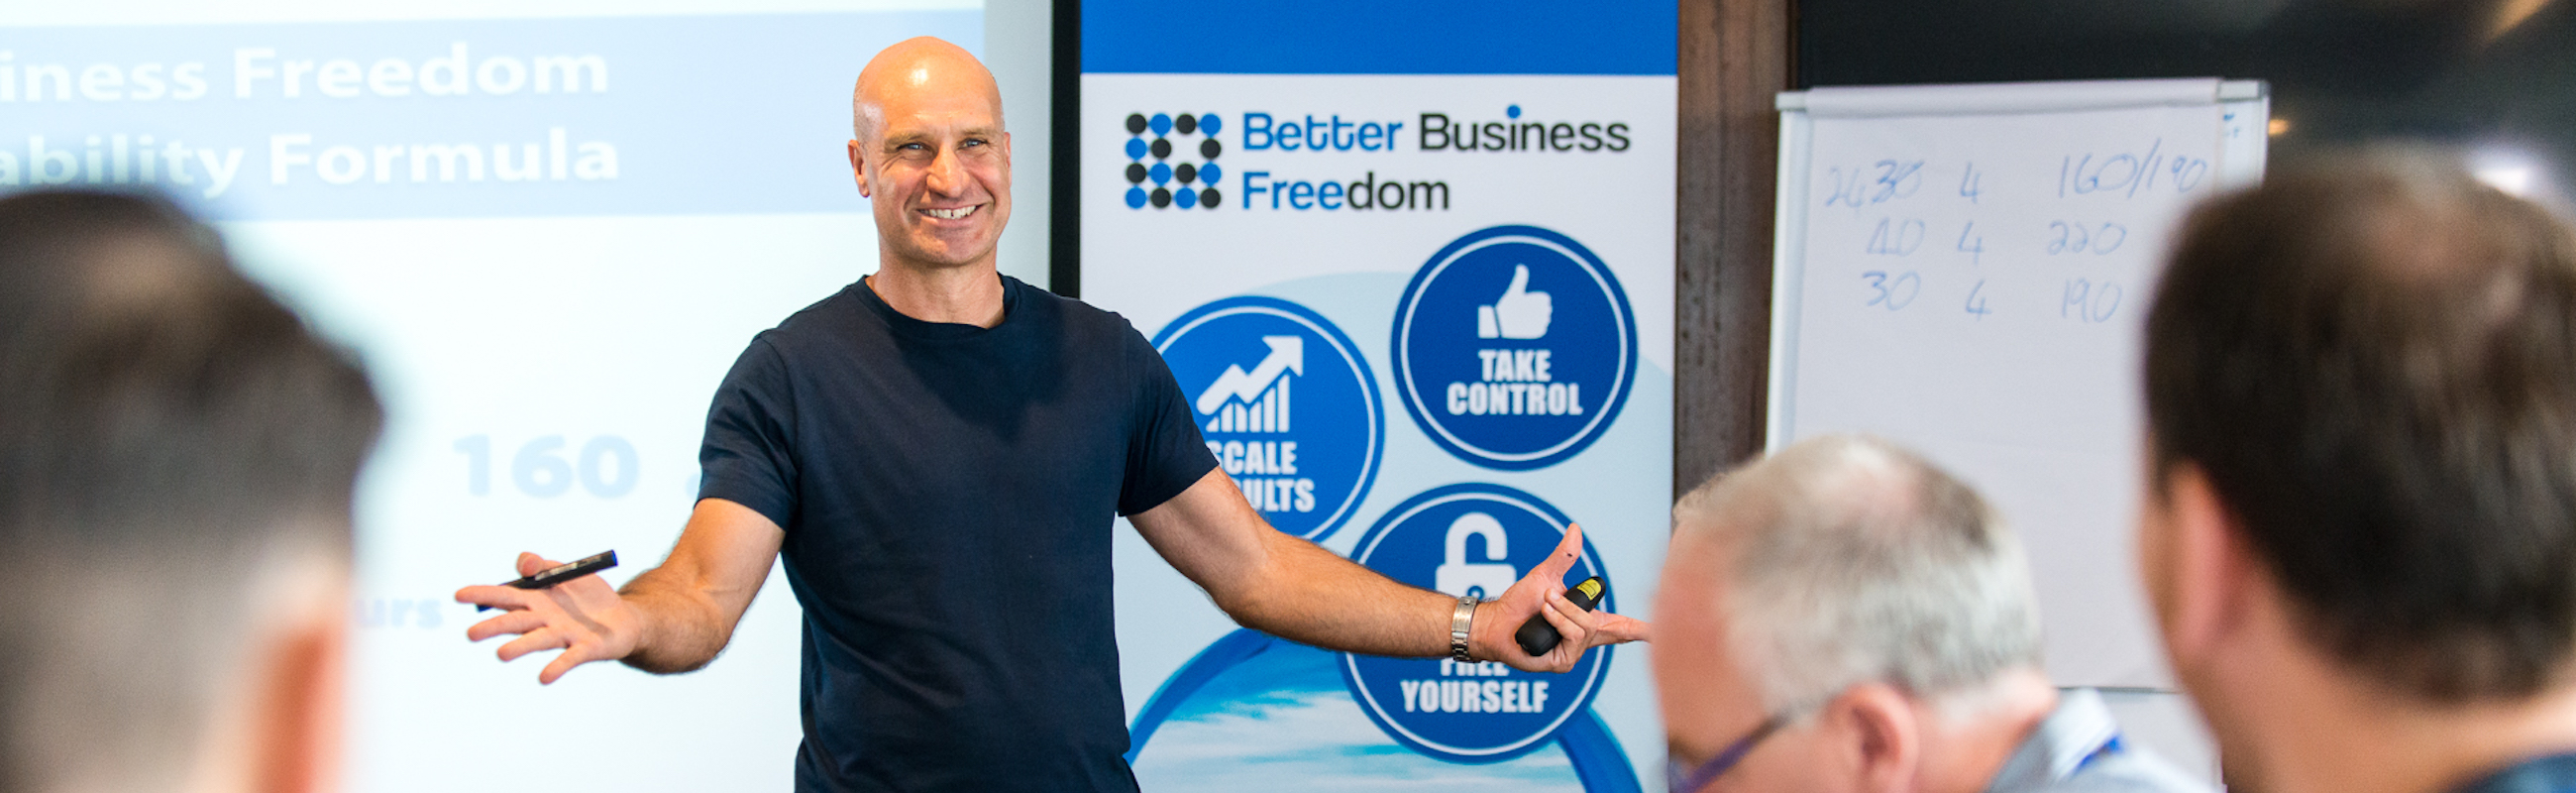 Sunshine Coast Business Coach - Jean-Marc Barbeau